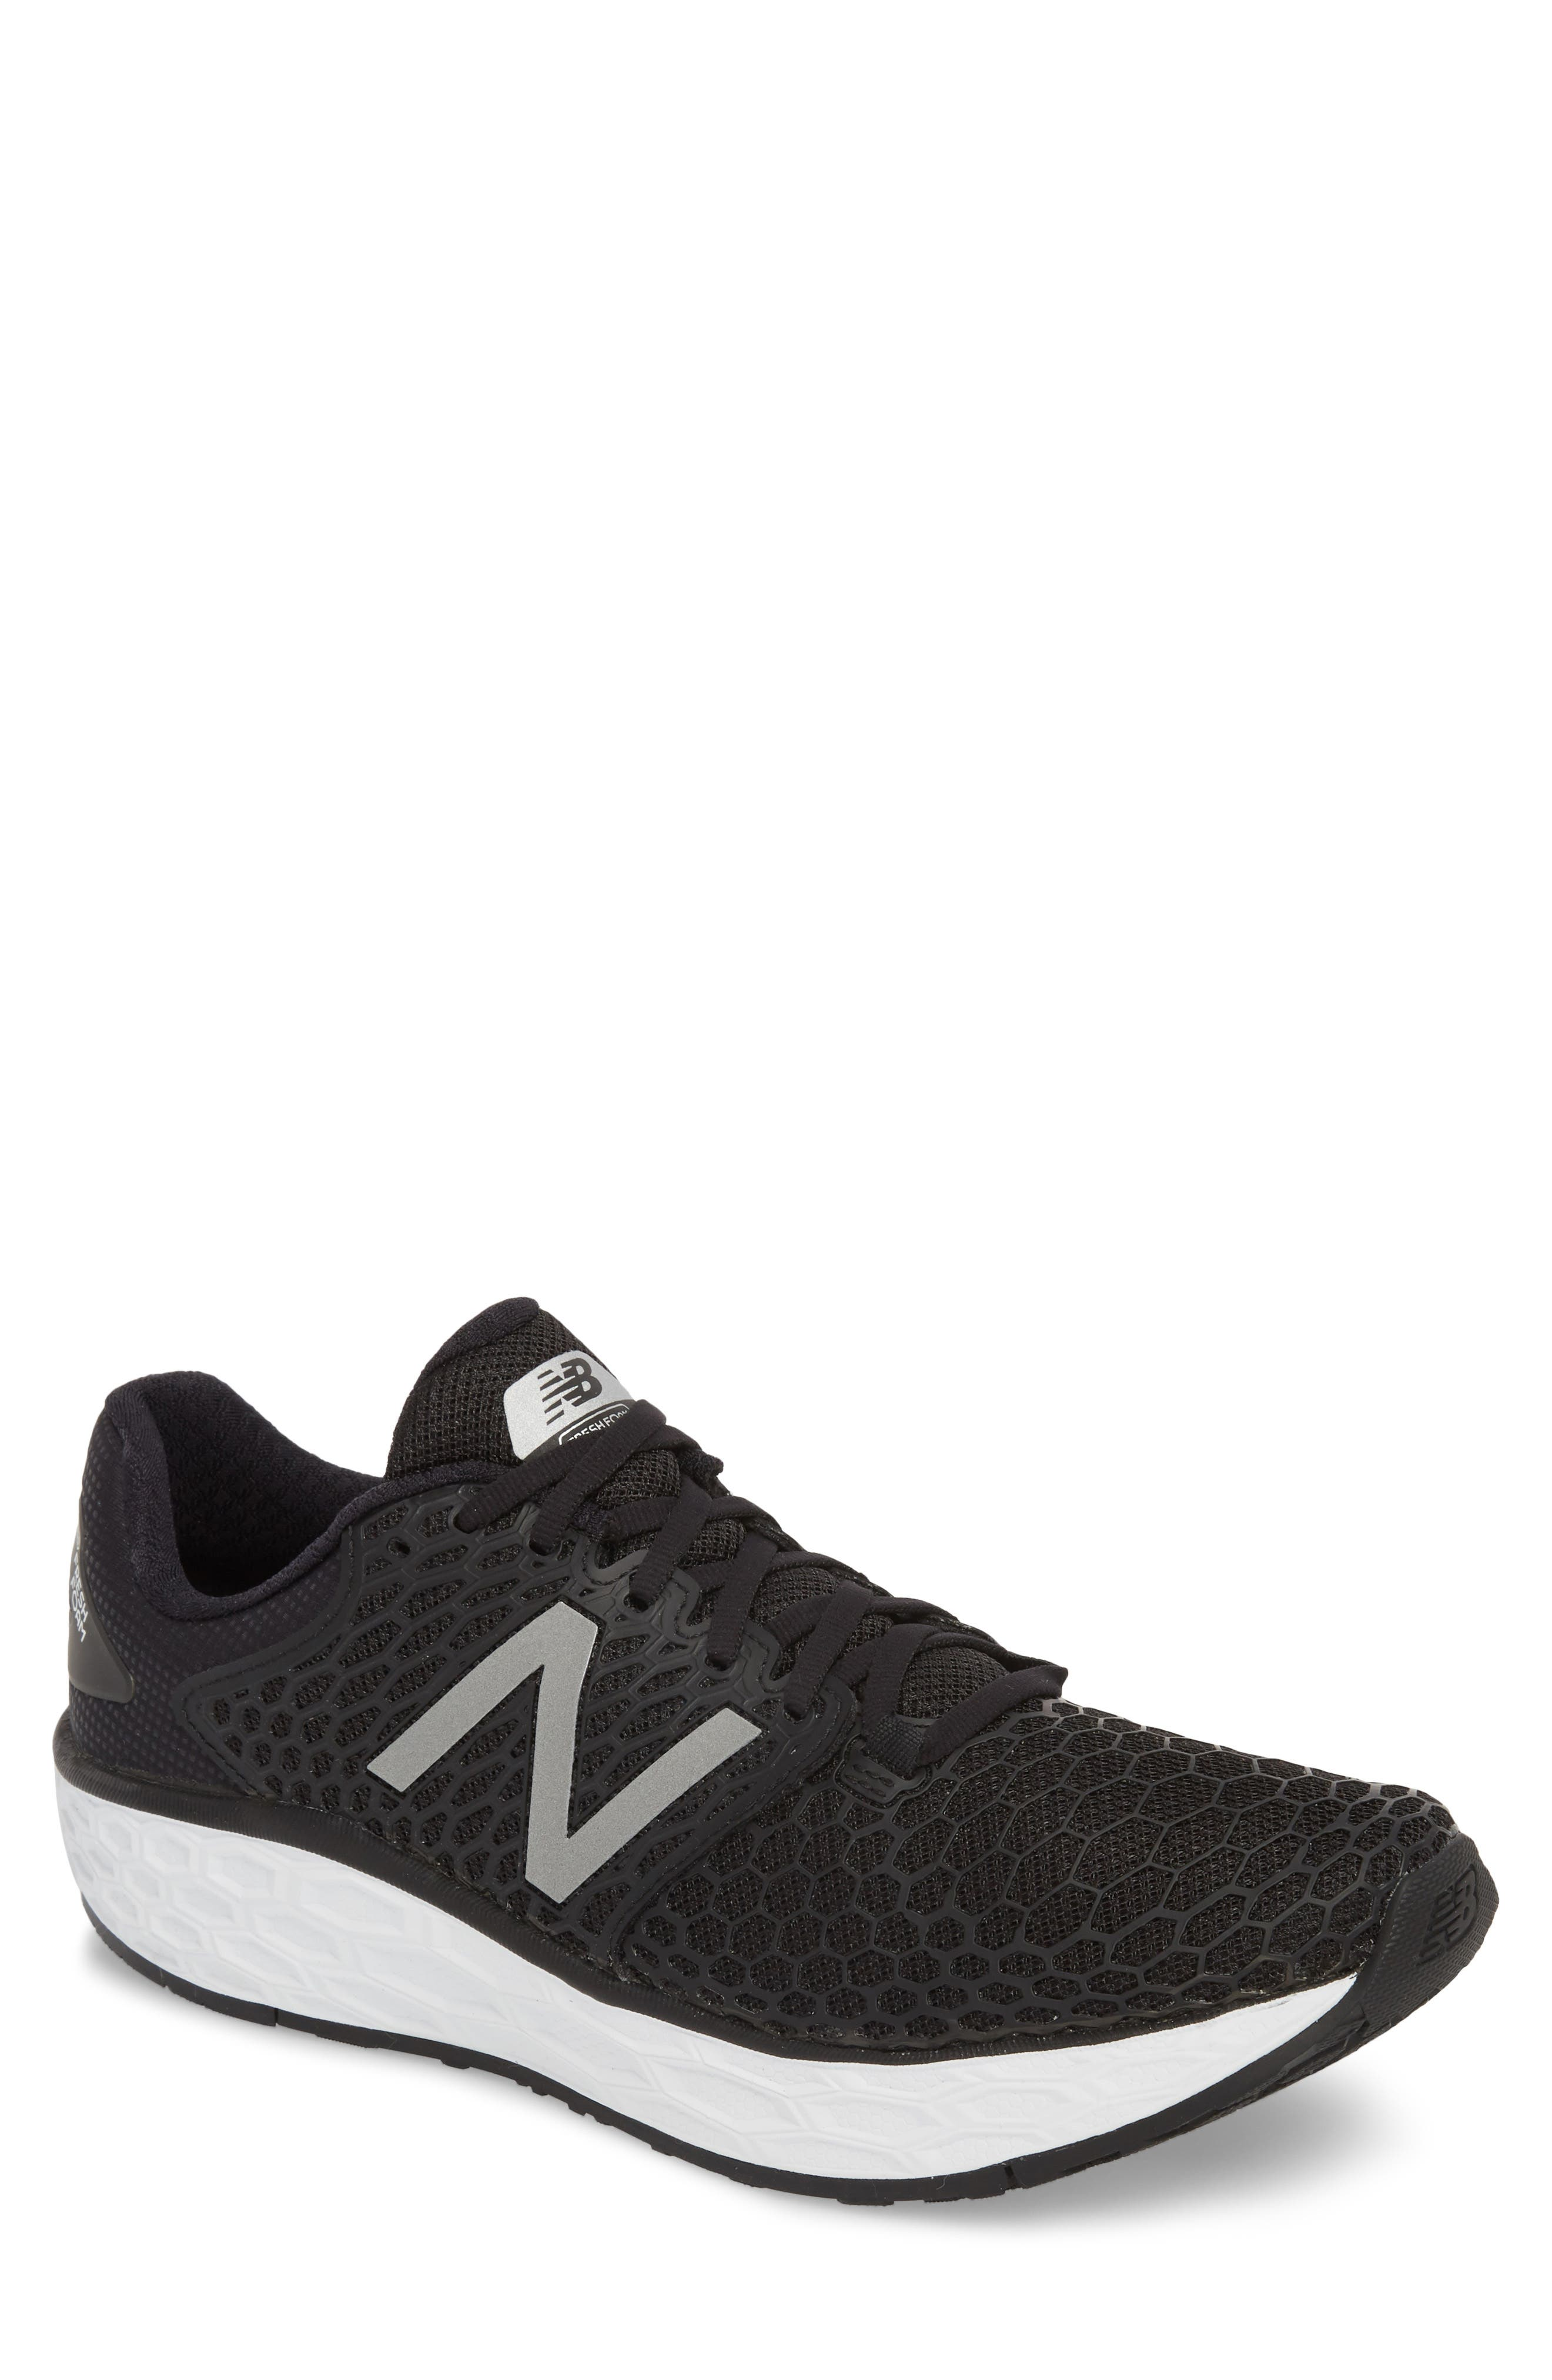 NEW BALANCE Fresh Foam Vongo v3 Running Shoe, Main, color, BLACK